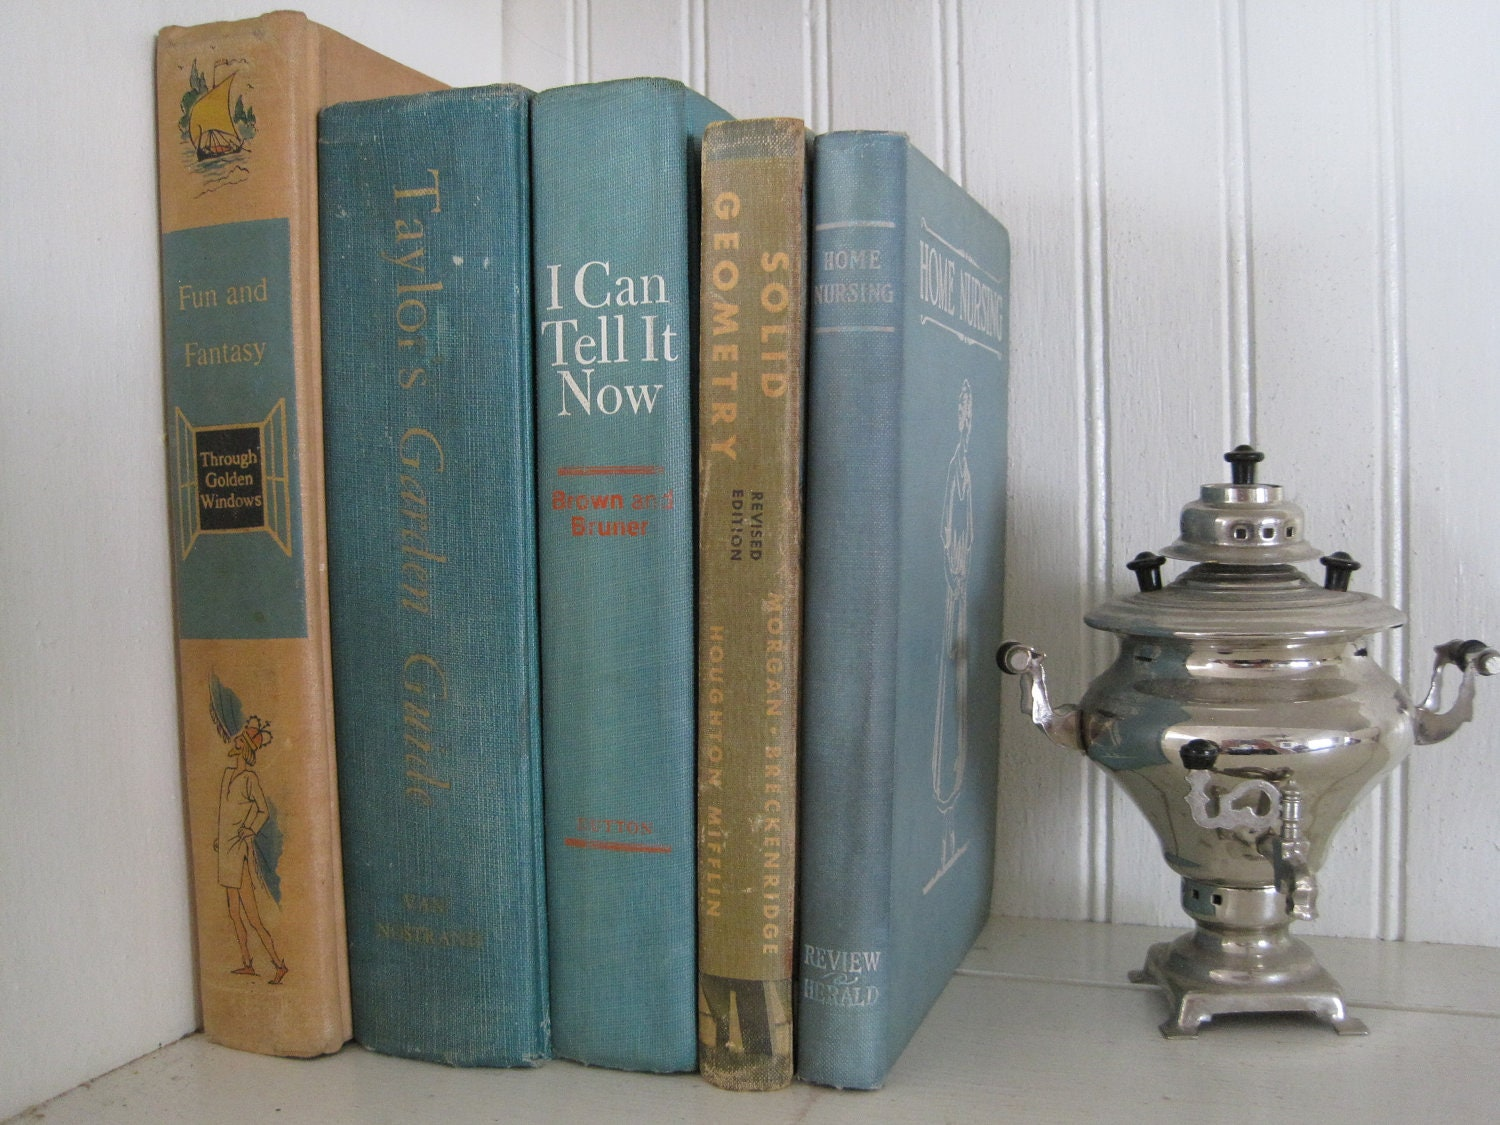 5 Vintage Aqua Blue Teal Turquoise Books Home Decor by thefarmroad